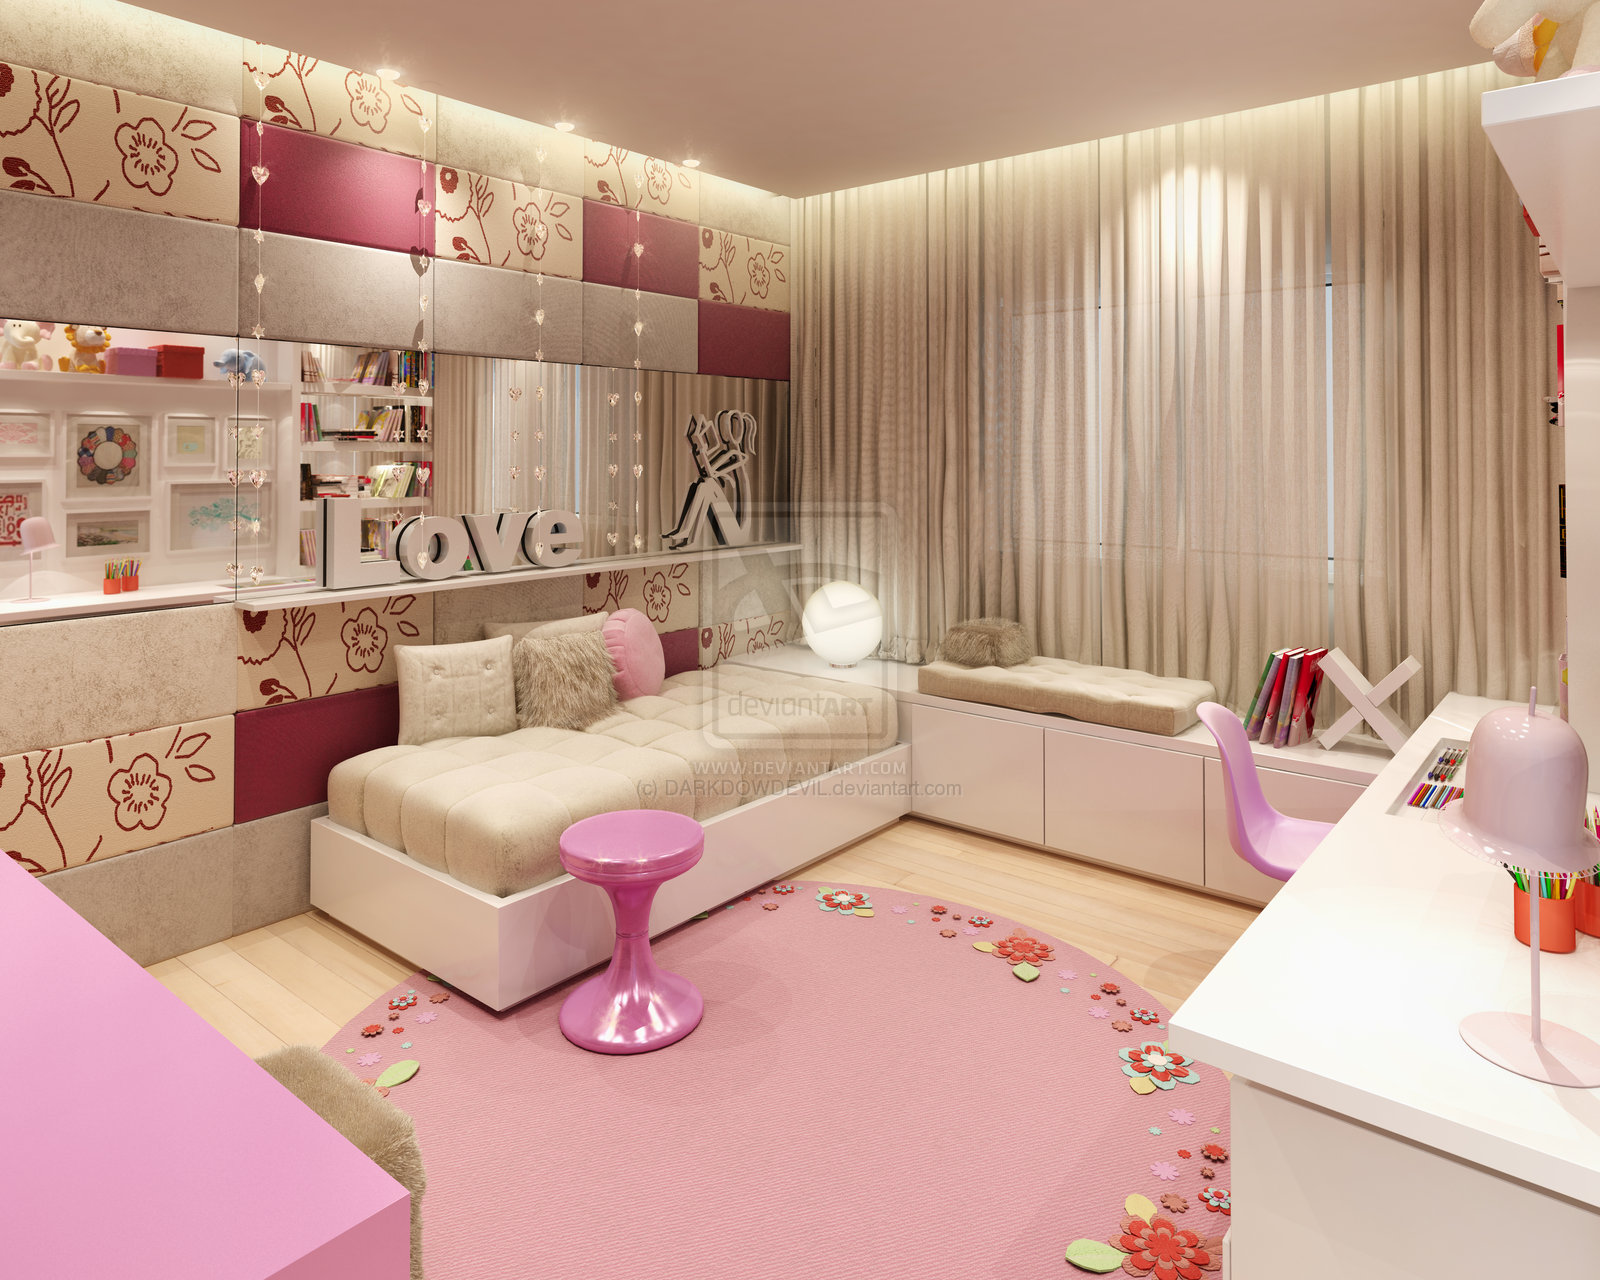 Home design interior monnie best girl bedrooms in the world - Pics of girl room ideas ...